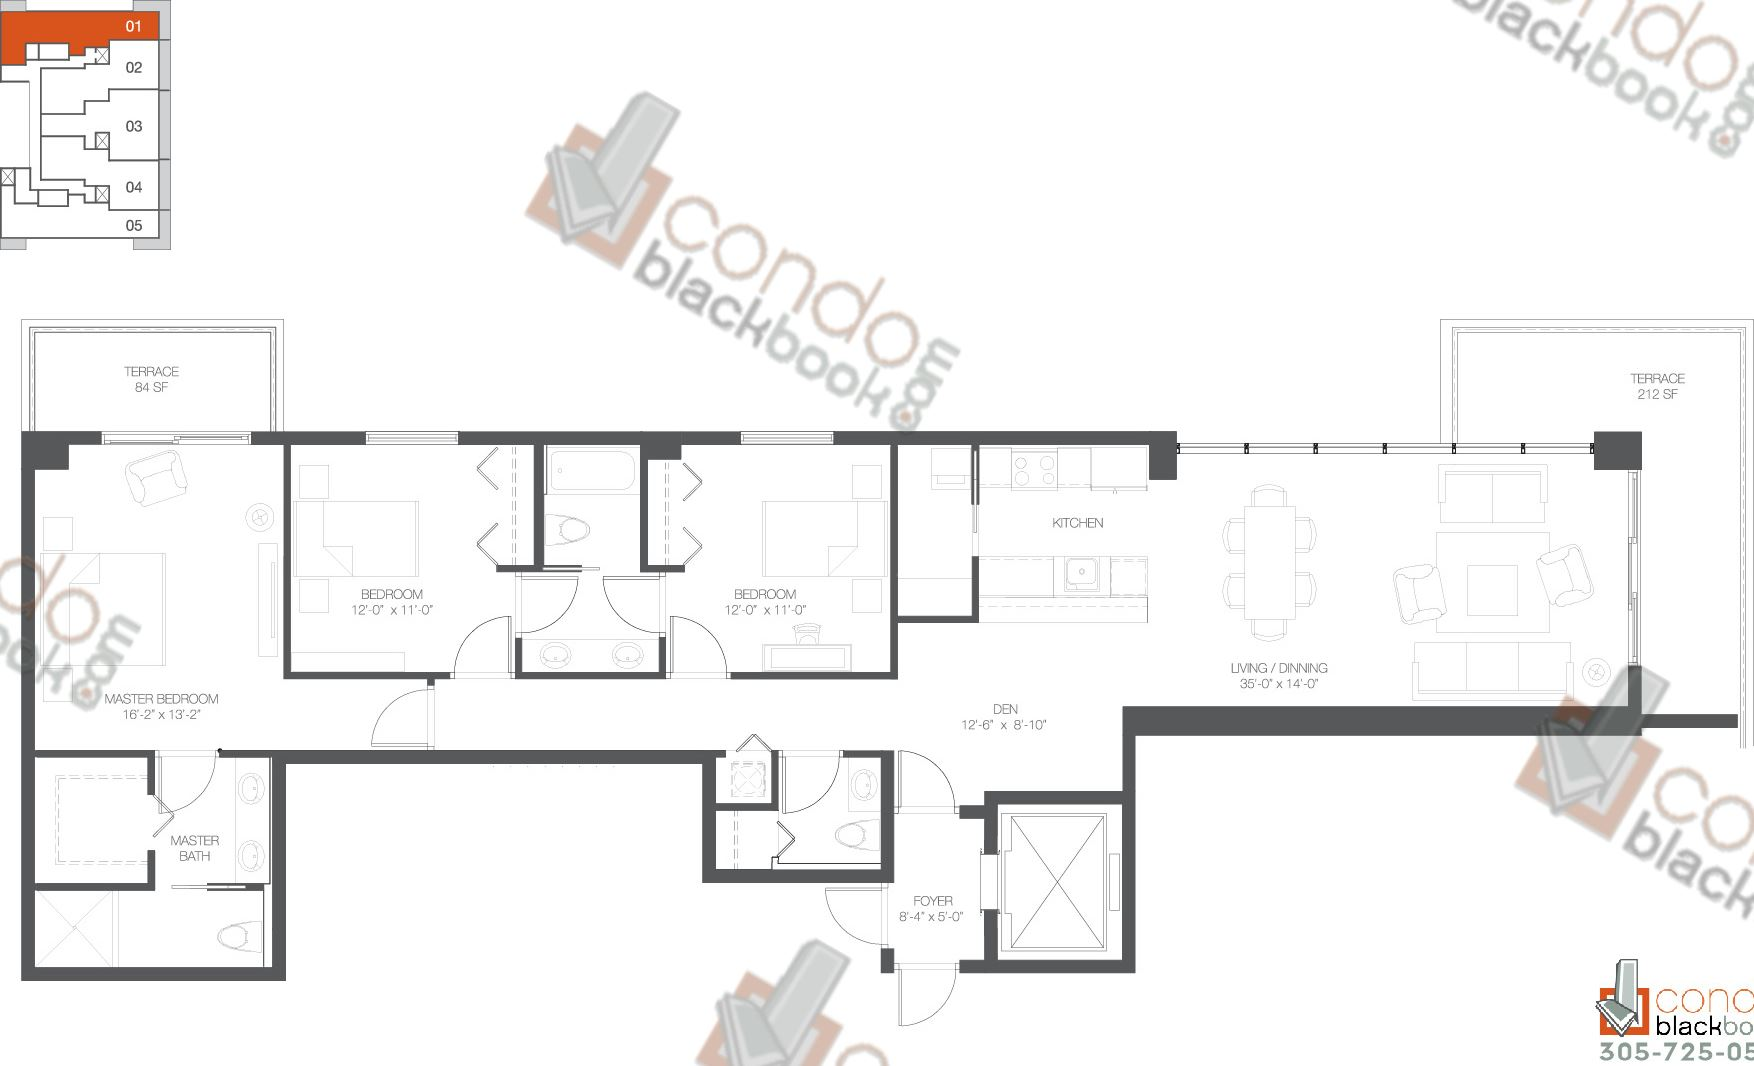 Miami Mansion Floor Plans Of Bay House Unit 1501 Condo For Sale In Edgewater Miami